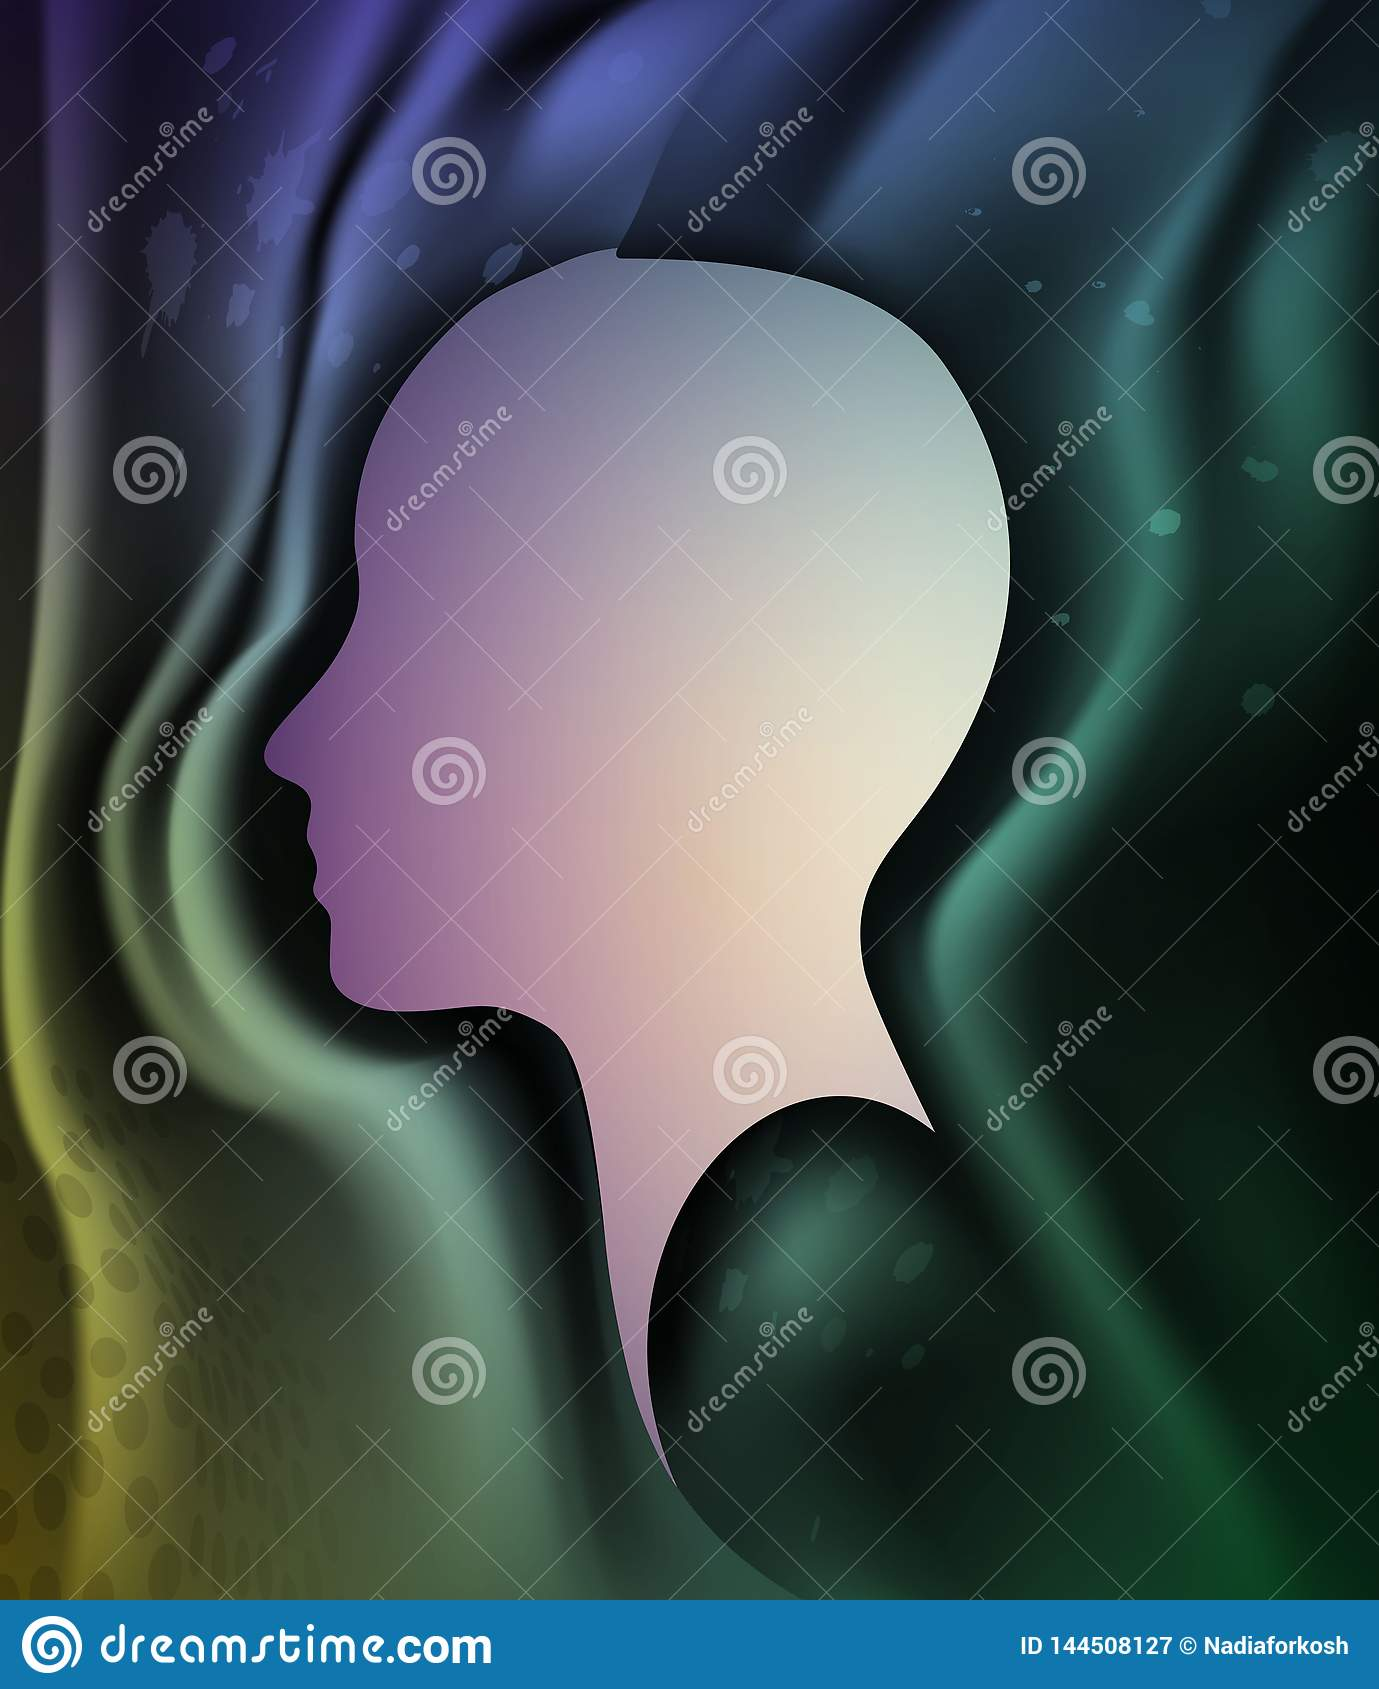 Memory lost concept, human head profile with emptiness inside, color of mind energy, memory lost,